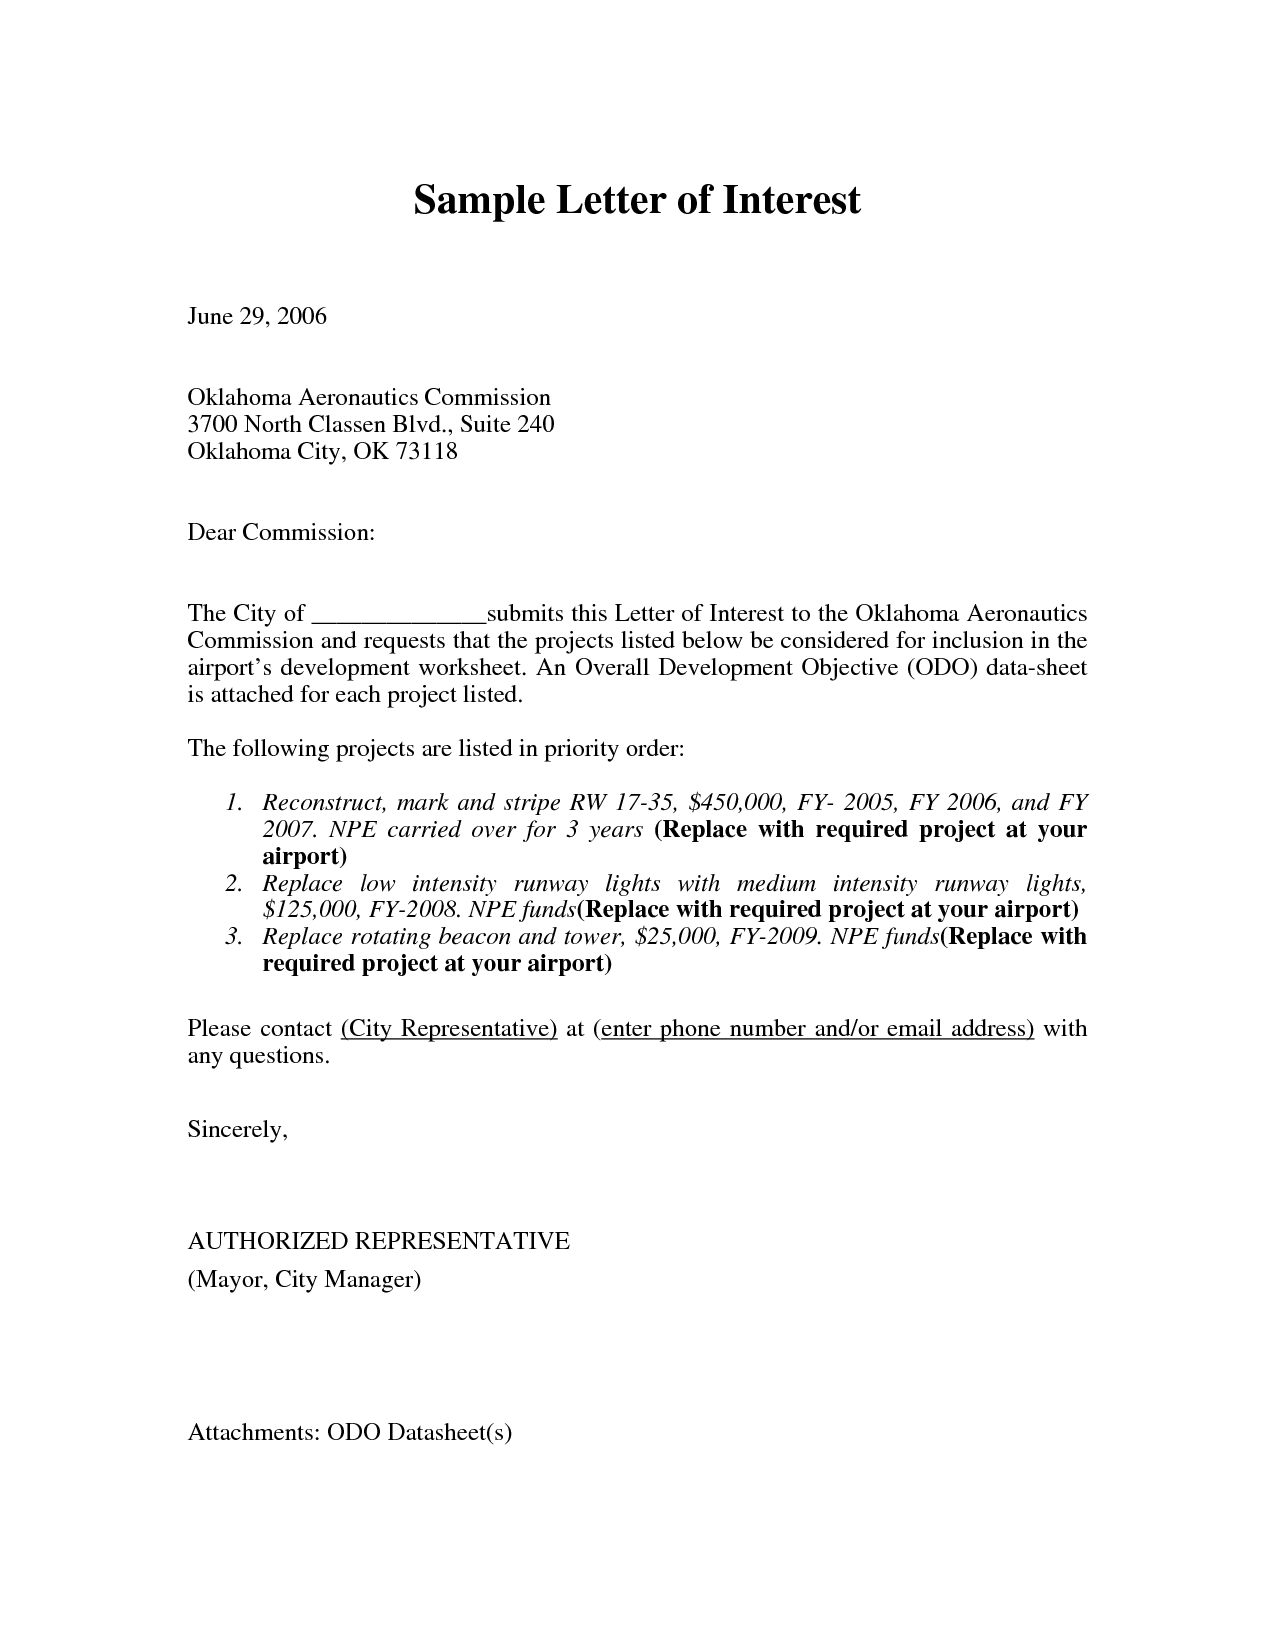 Letter of interest cover letters dawaydabrowa letter of interest cover letters expocarfo